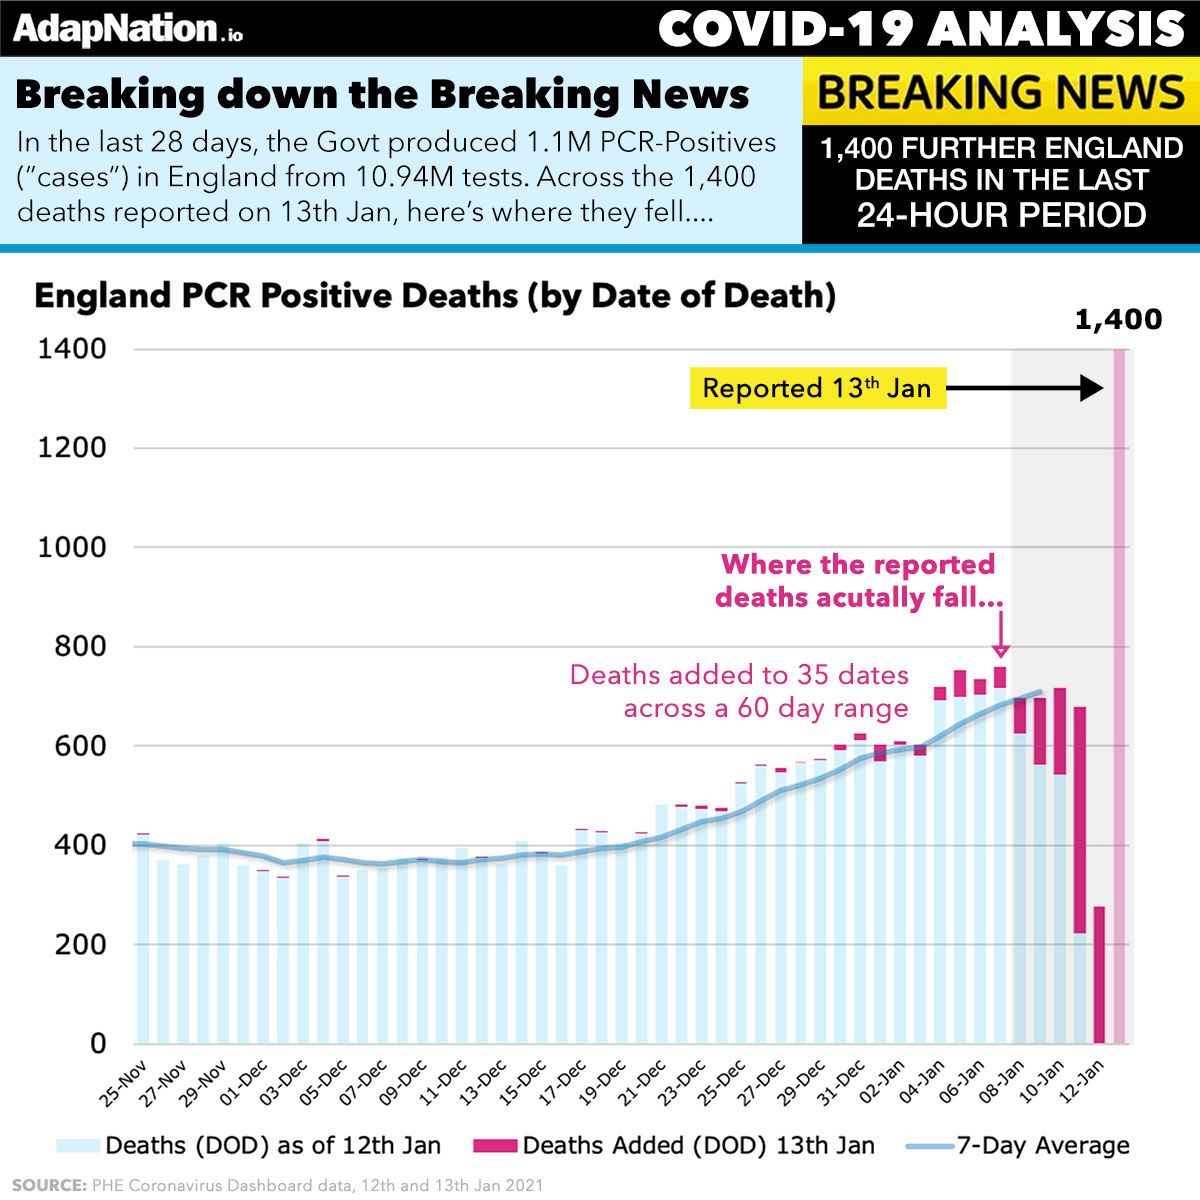 England Deaths 13th Jan by Date of Death